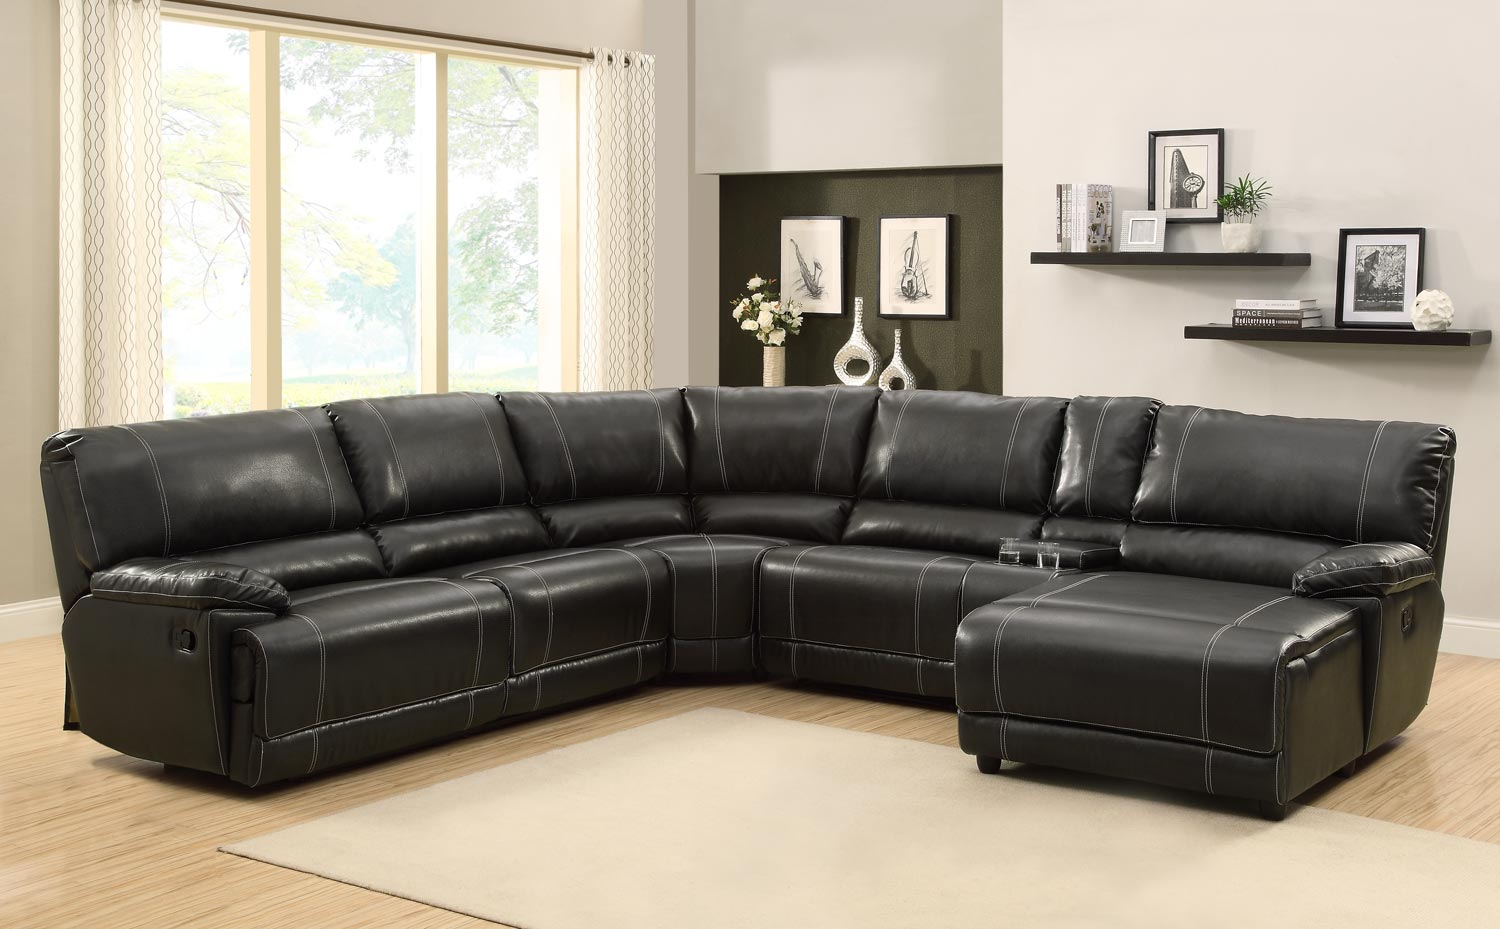 homelegance cale sectional sofa set black bonded leather match u9608 at. Black Bedroom Furniture Sets. Home Design Ideas